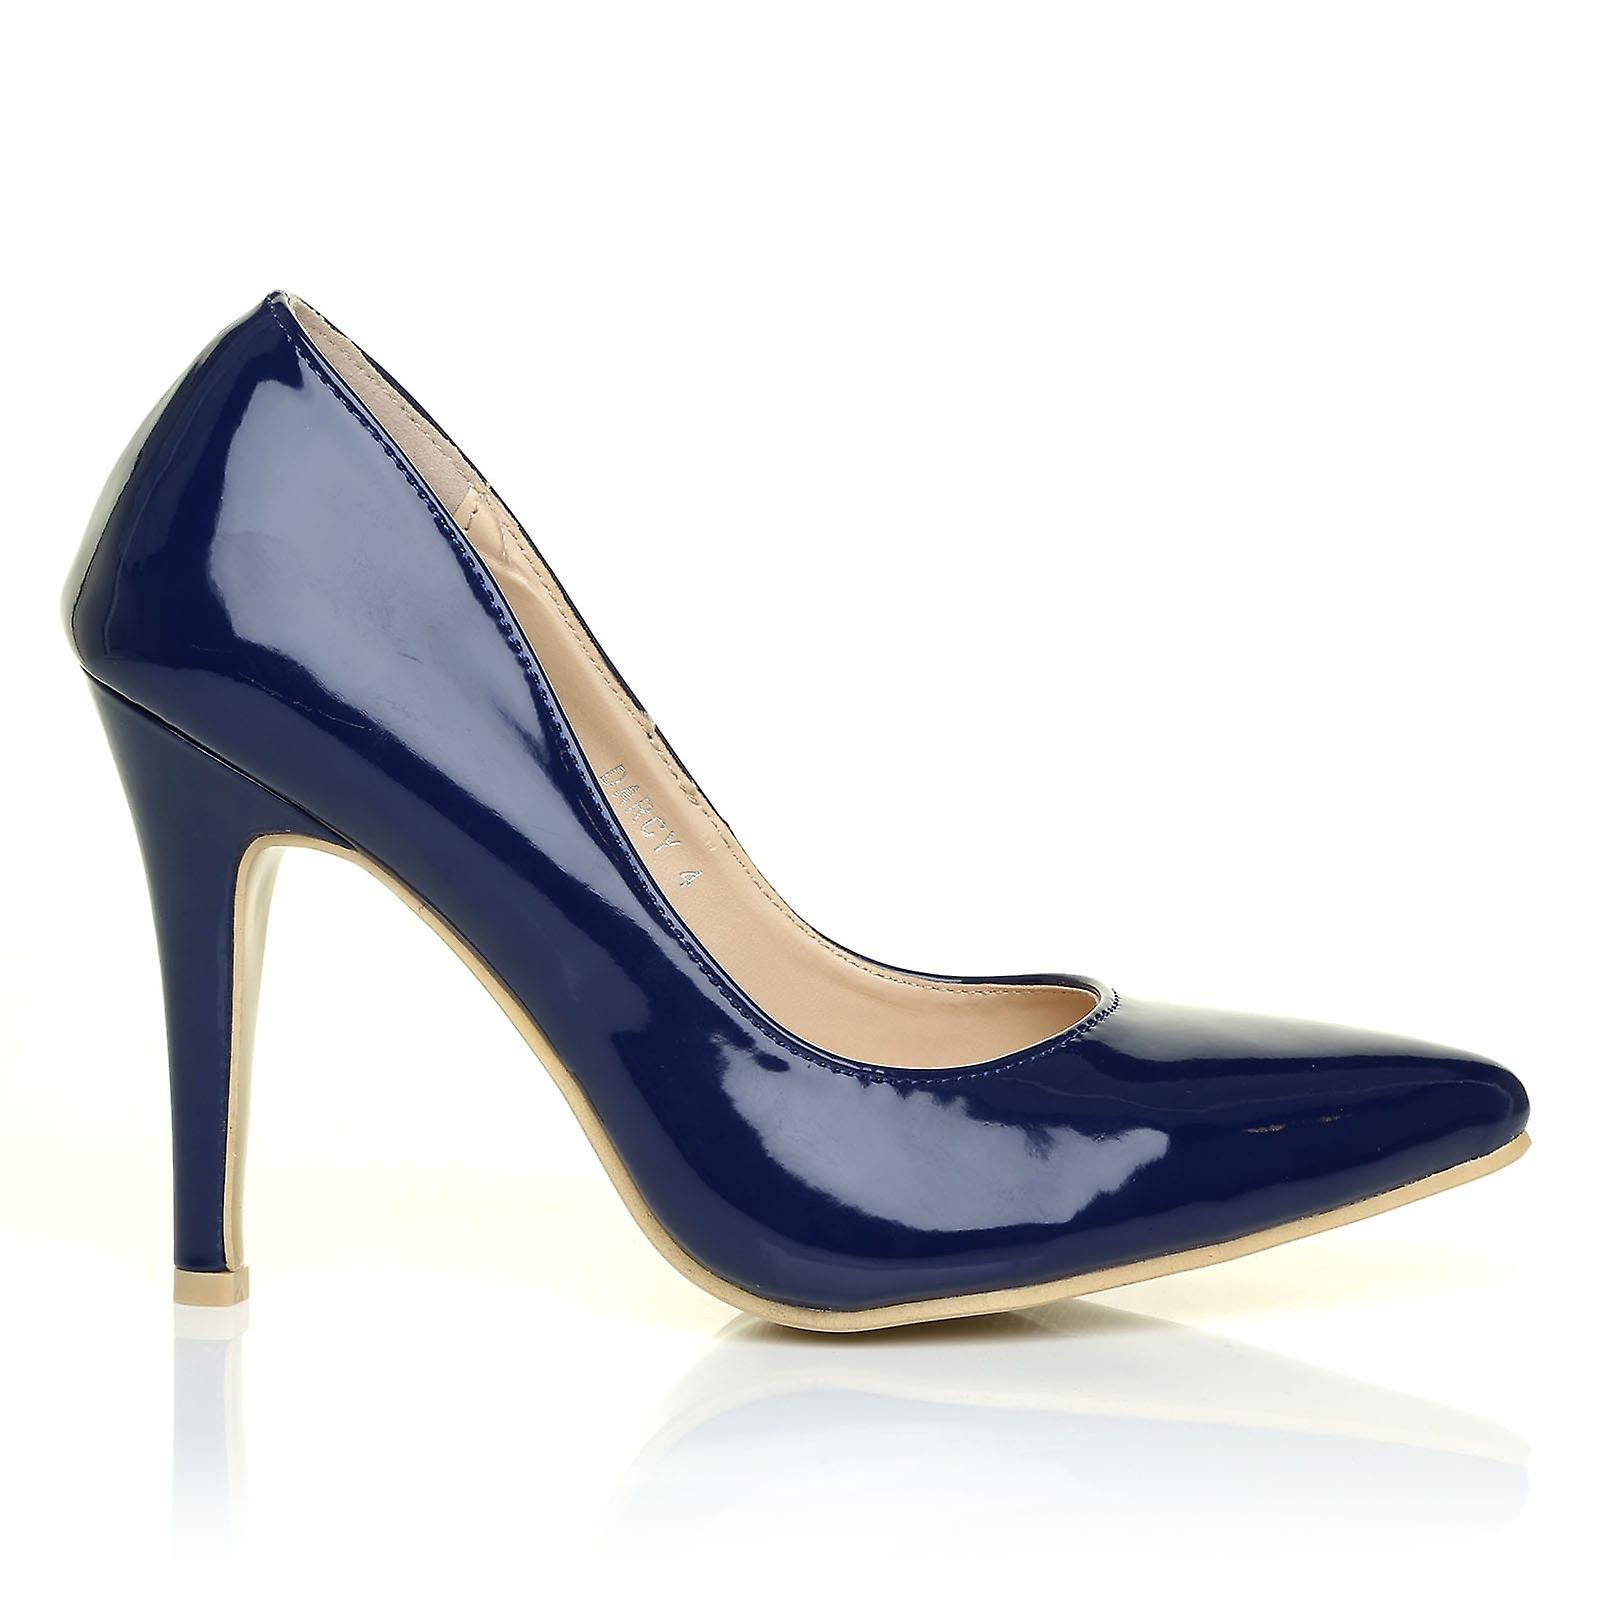 DARCY Navy Heel Patent PU Leather Stilleto High Heel Navy Pointed Court Shoes 274f3f